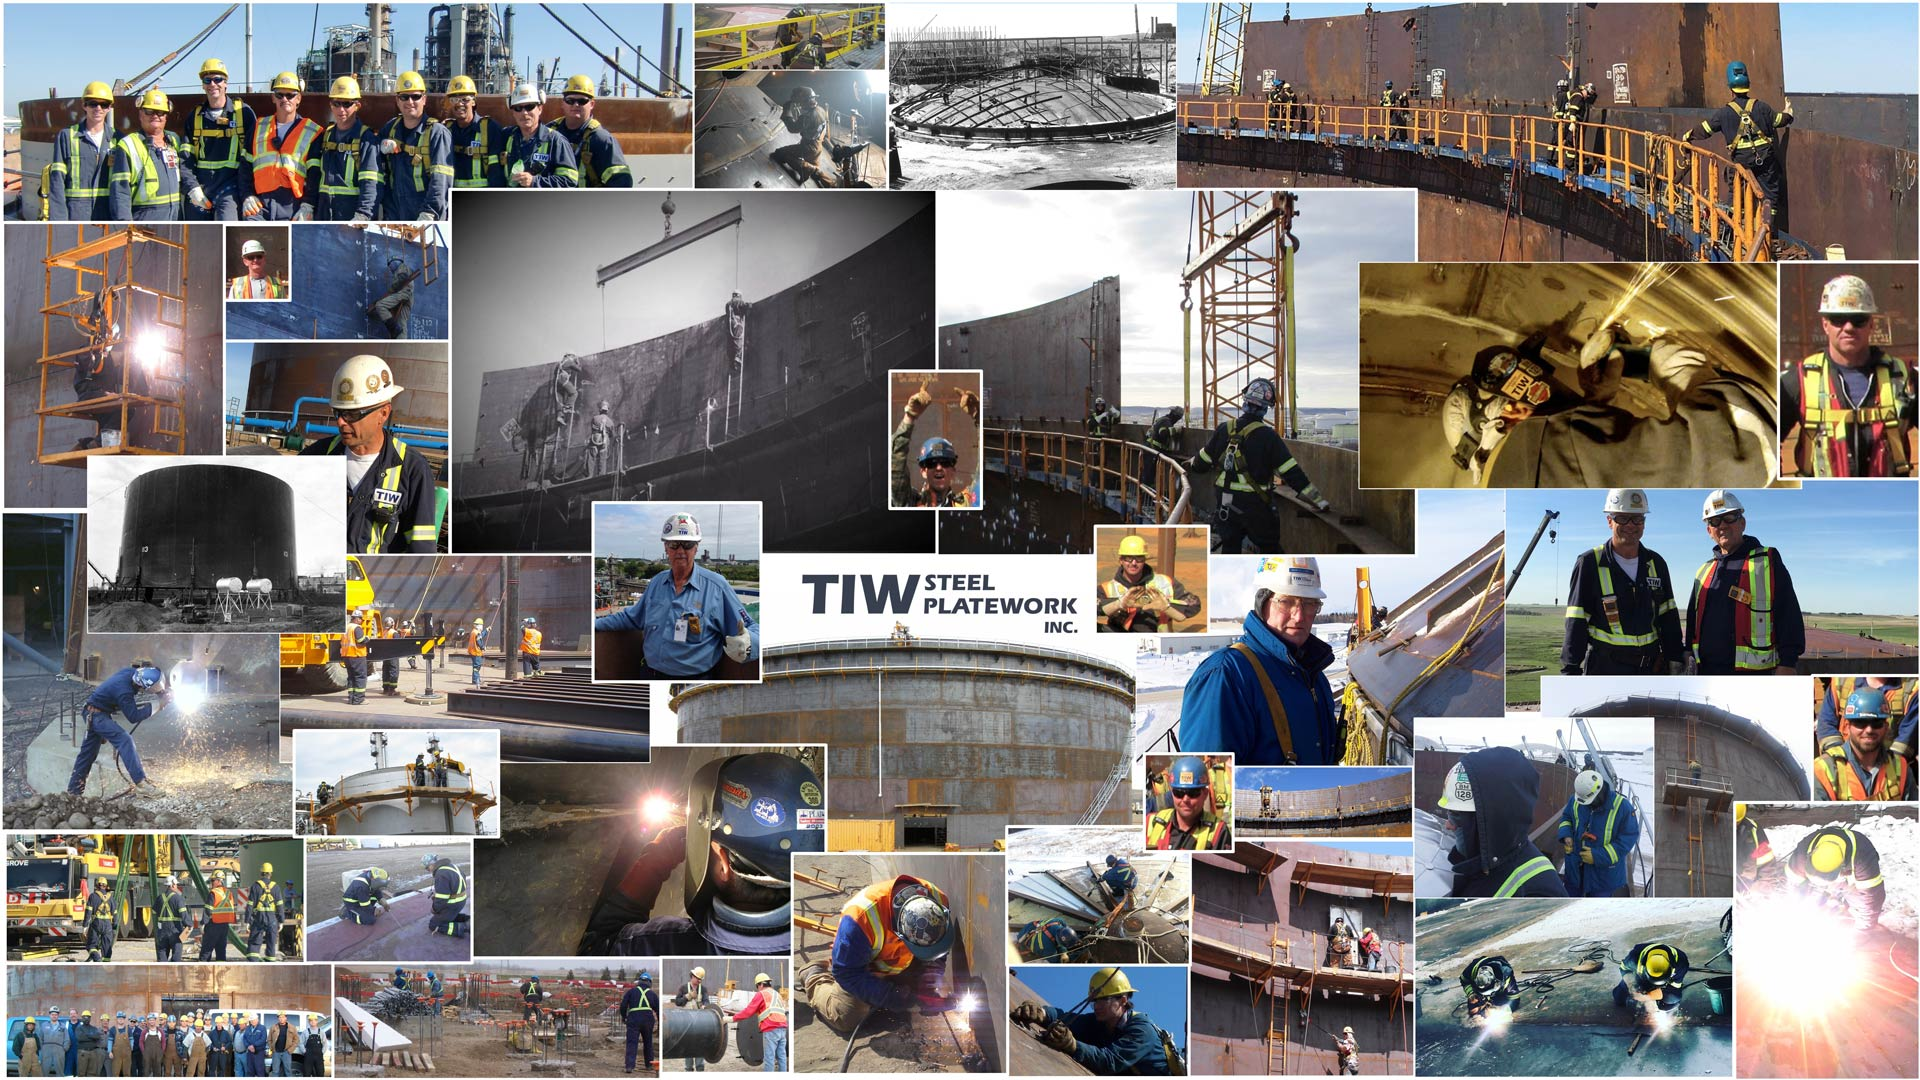 collage-what-is-a-tankee-tiw-steel-plate-work